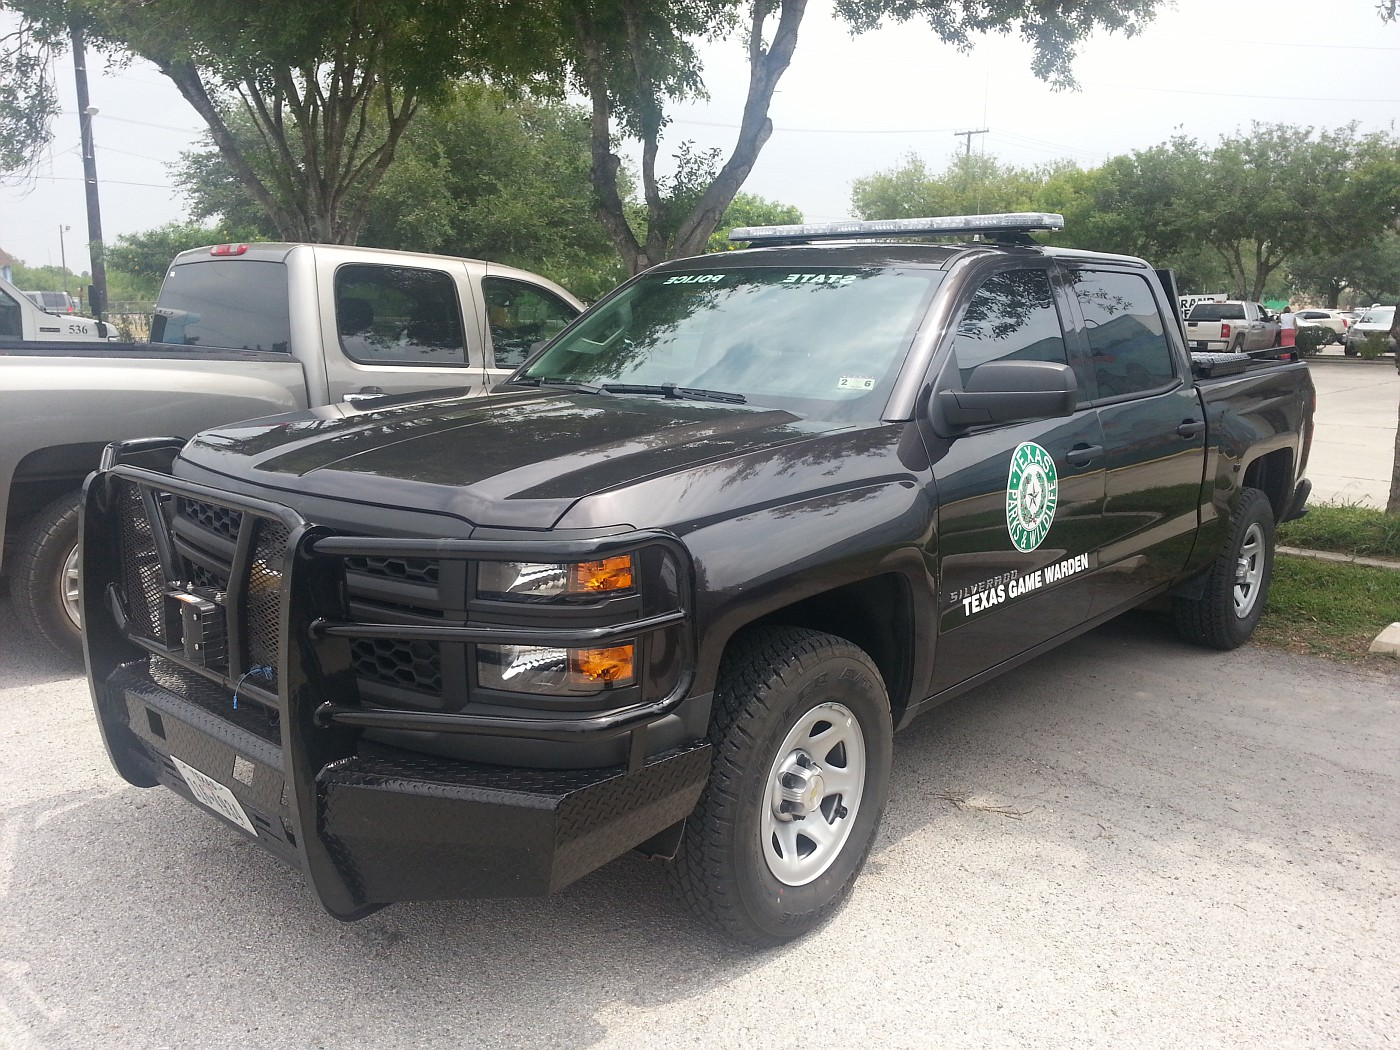 Game Warden Car